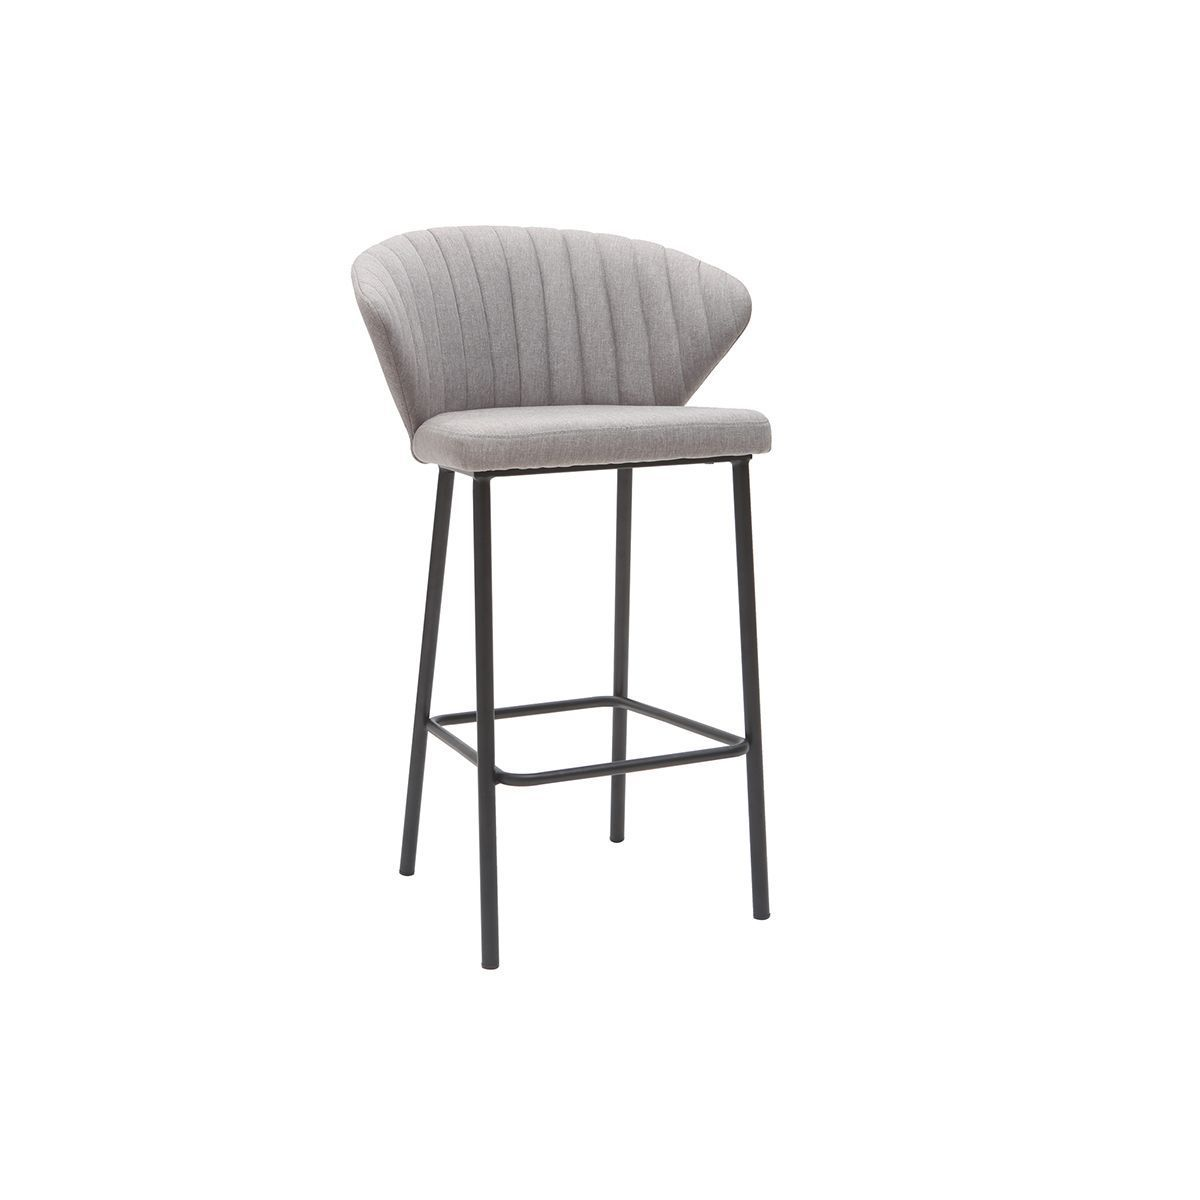 gris en 65 Tabouret tissu DALLY bar de cm 2019 design vOynN8wm0P